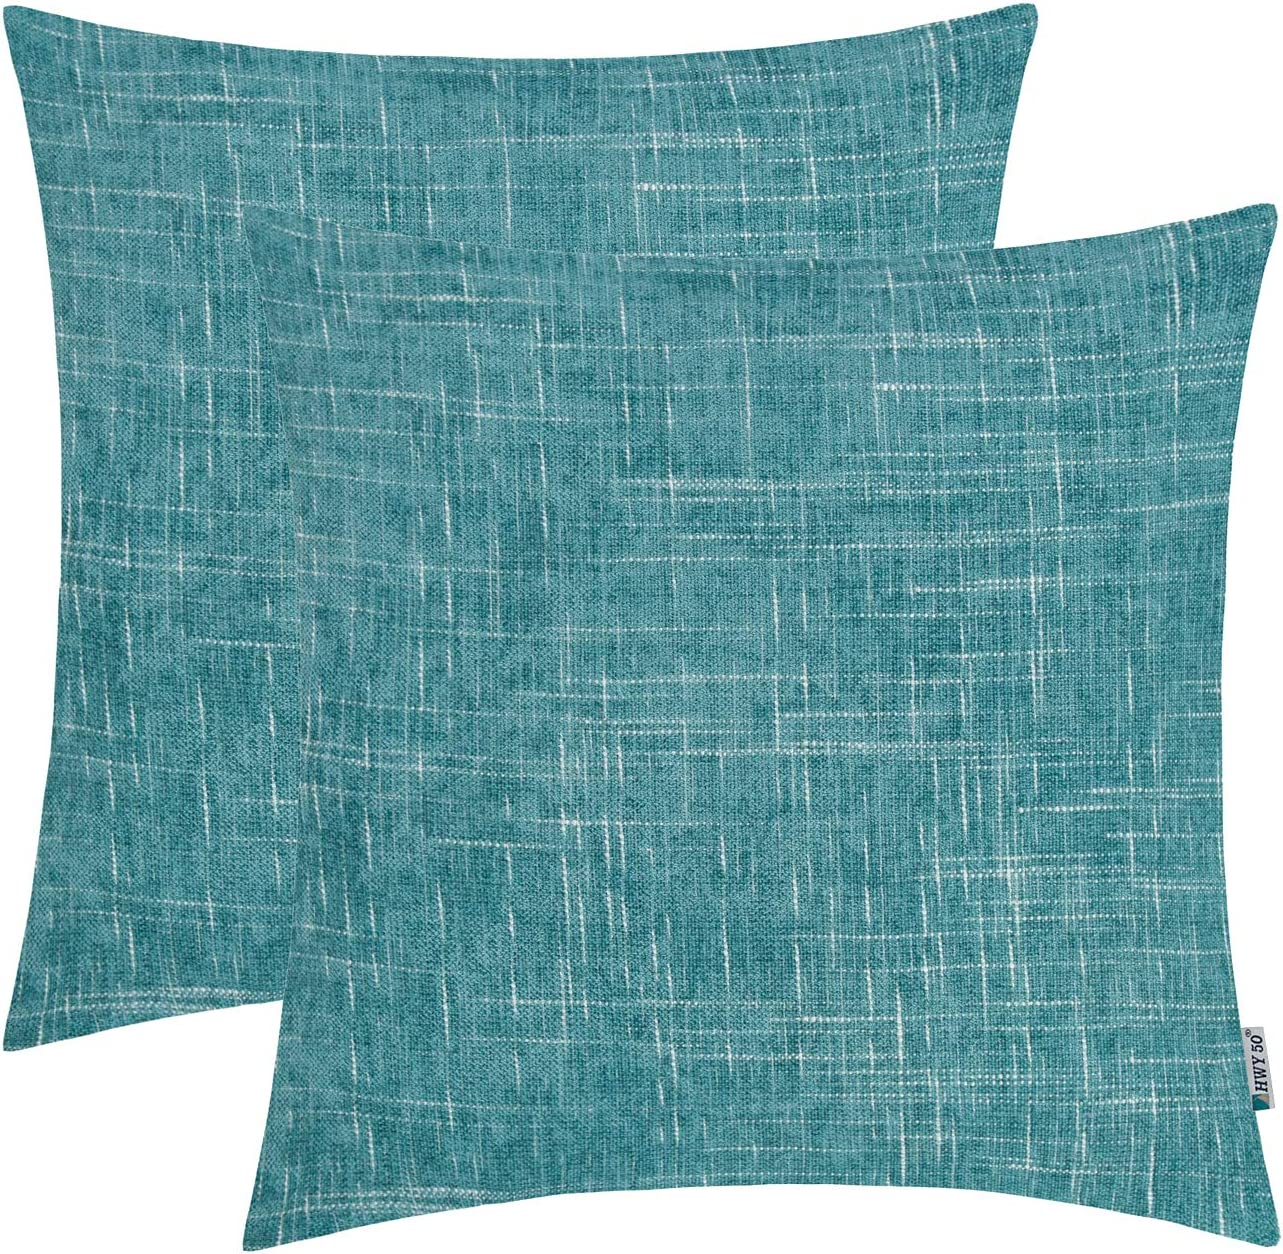 HWY 50 Chenille Soft Comfortable Decorative Throw Pillows Covers Set Cushion Cases for Couch Sofa Car 18 x 18 inch Cyan Pack of 2